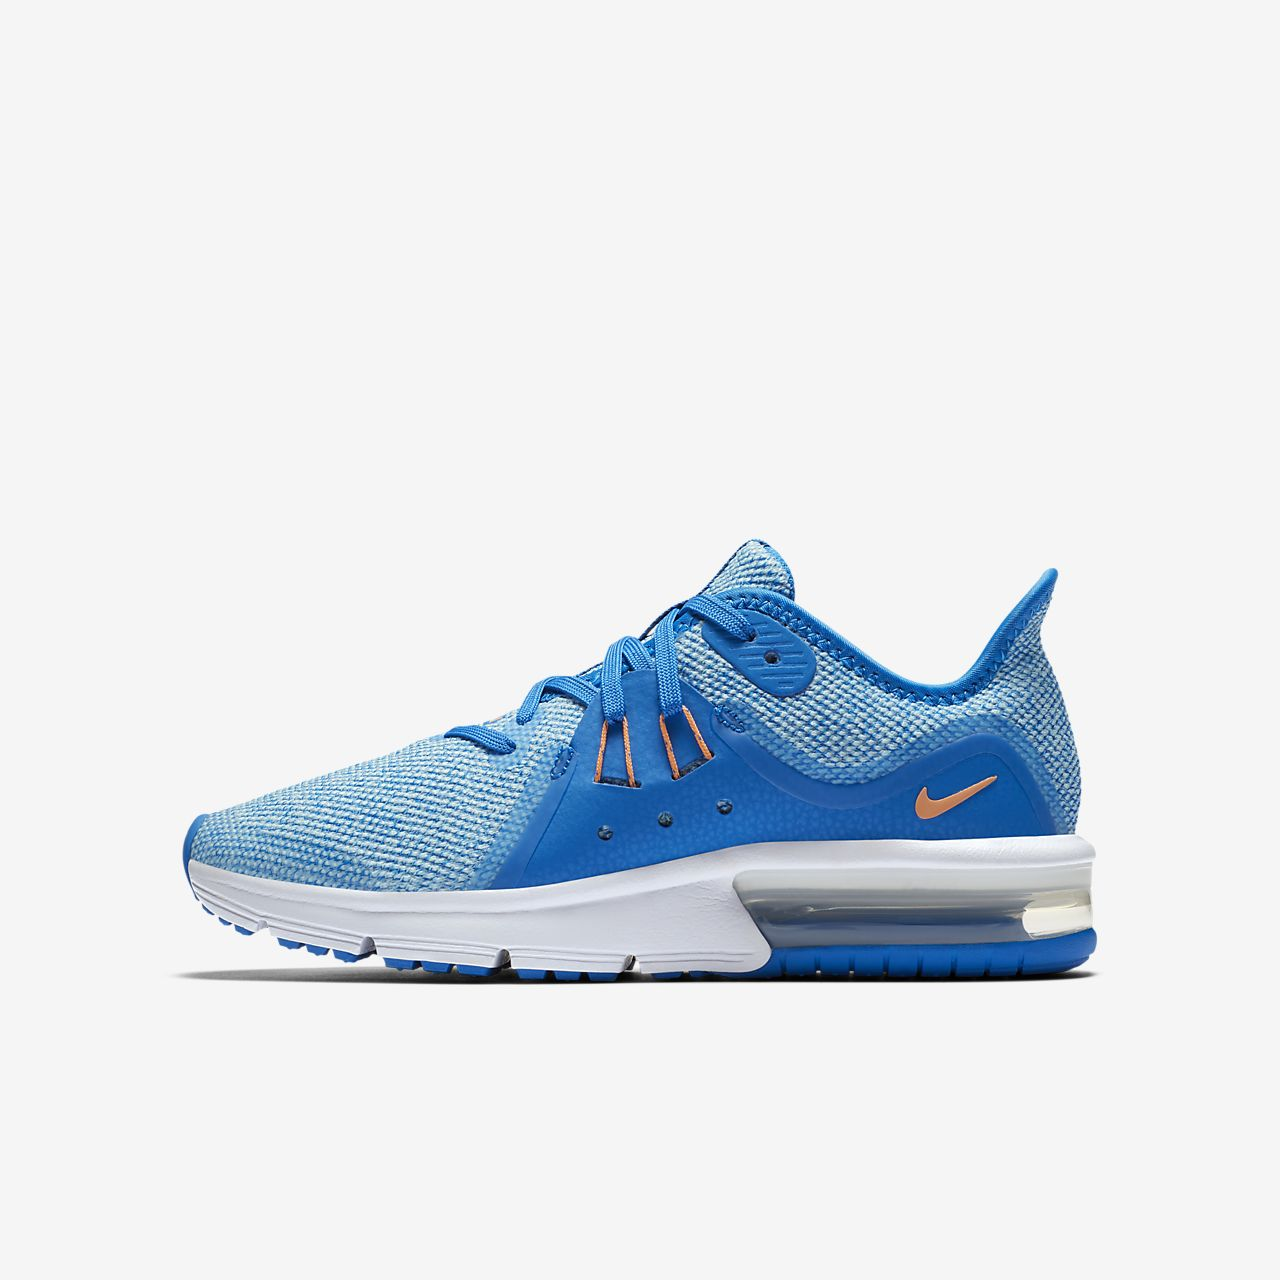 b4b93d38a3d Nike Air Max Sequent 3 Older Kids  Shoe. Nike.com ZA